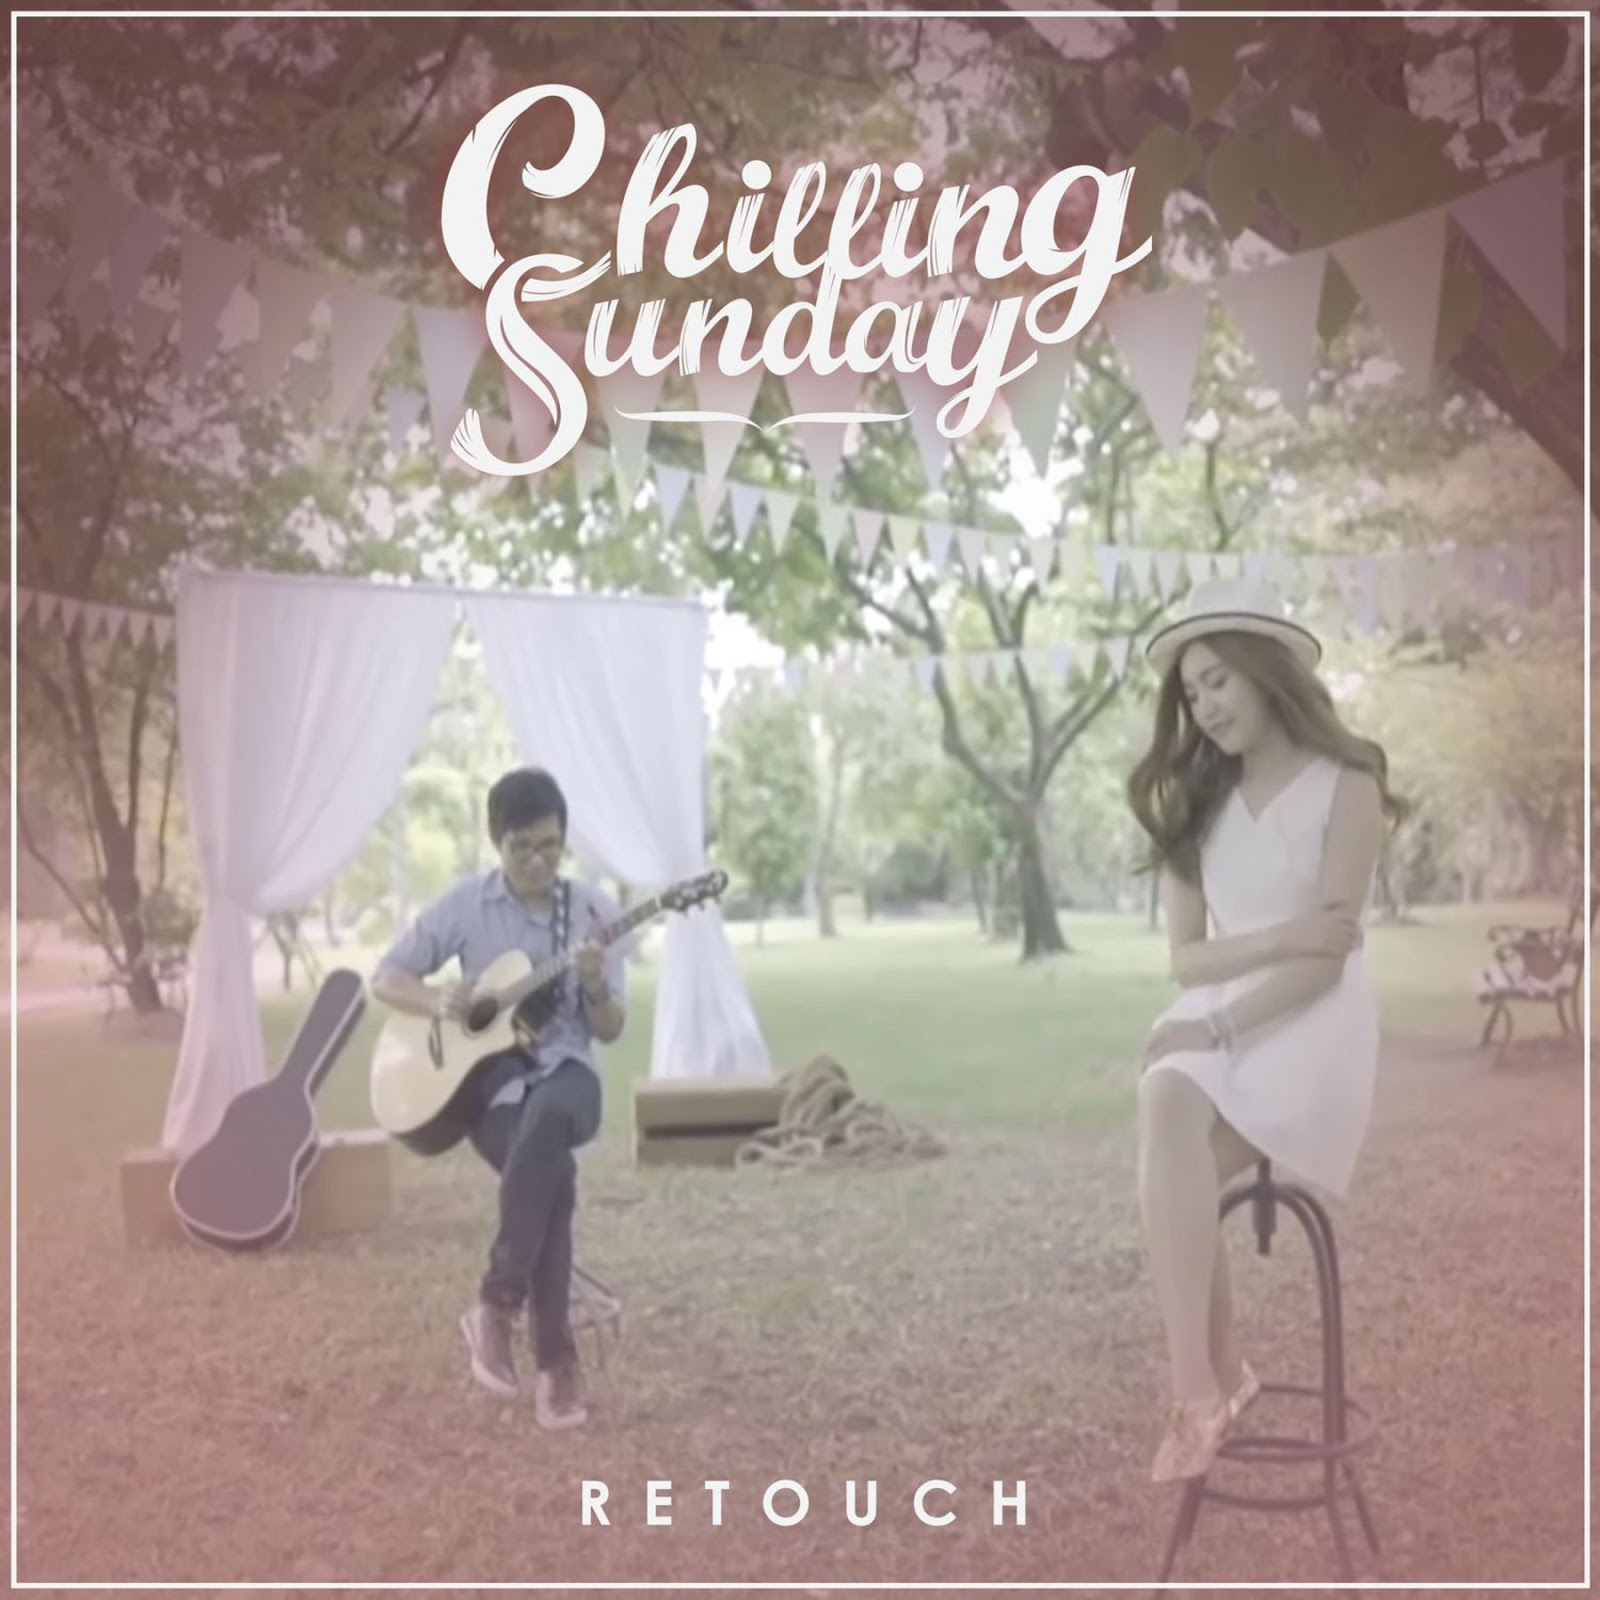 Retouch : Chilling Sunday